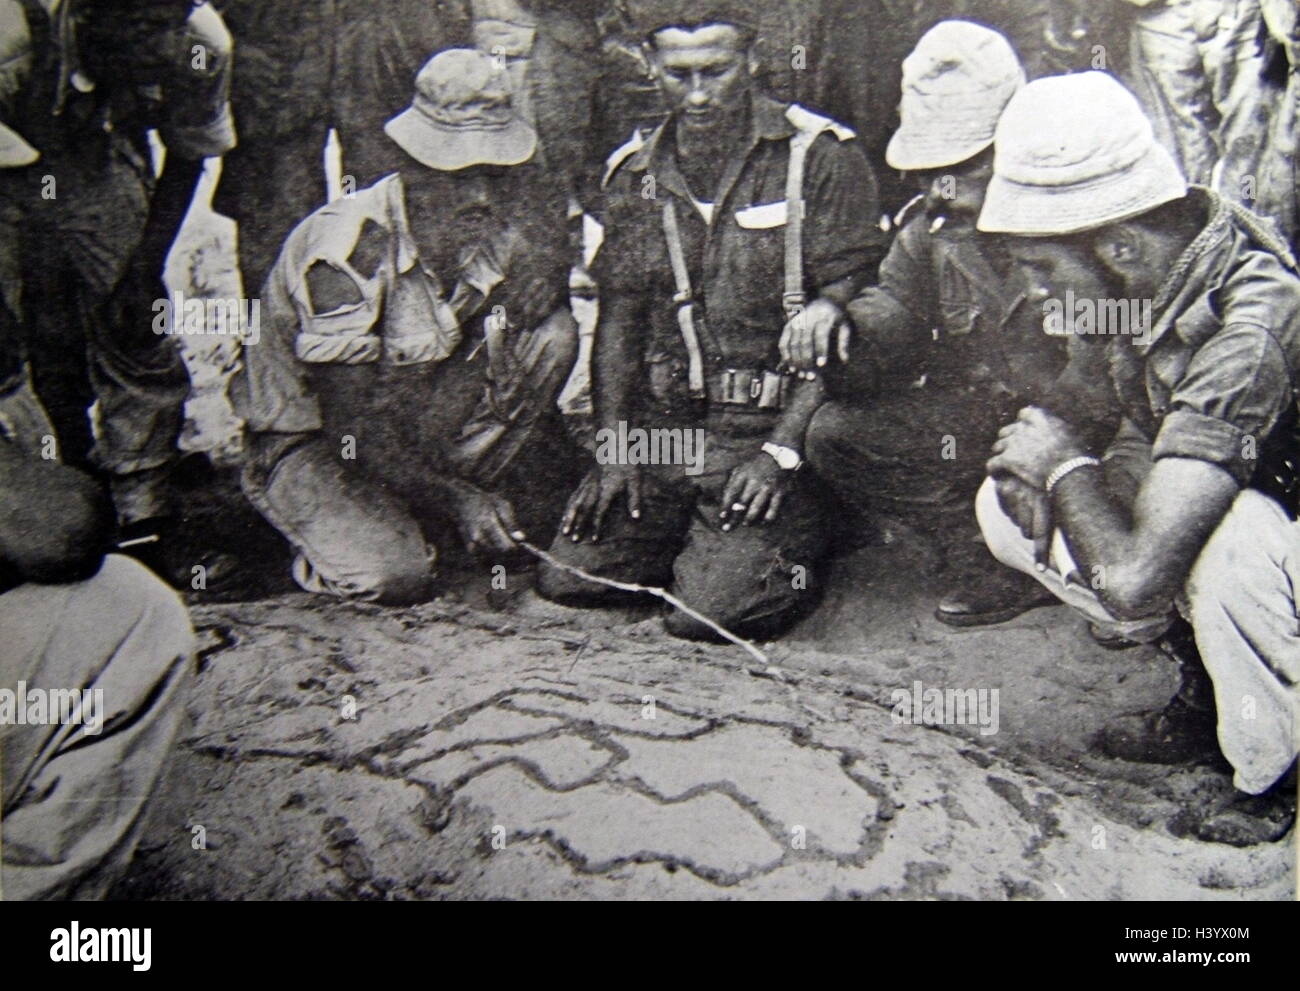 Photograph of an Israeli Commander planning a military manoeuvre. Dated 20th Century - Stock Image